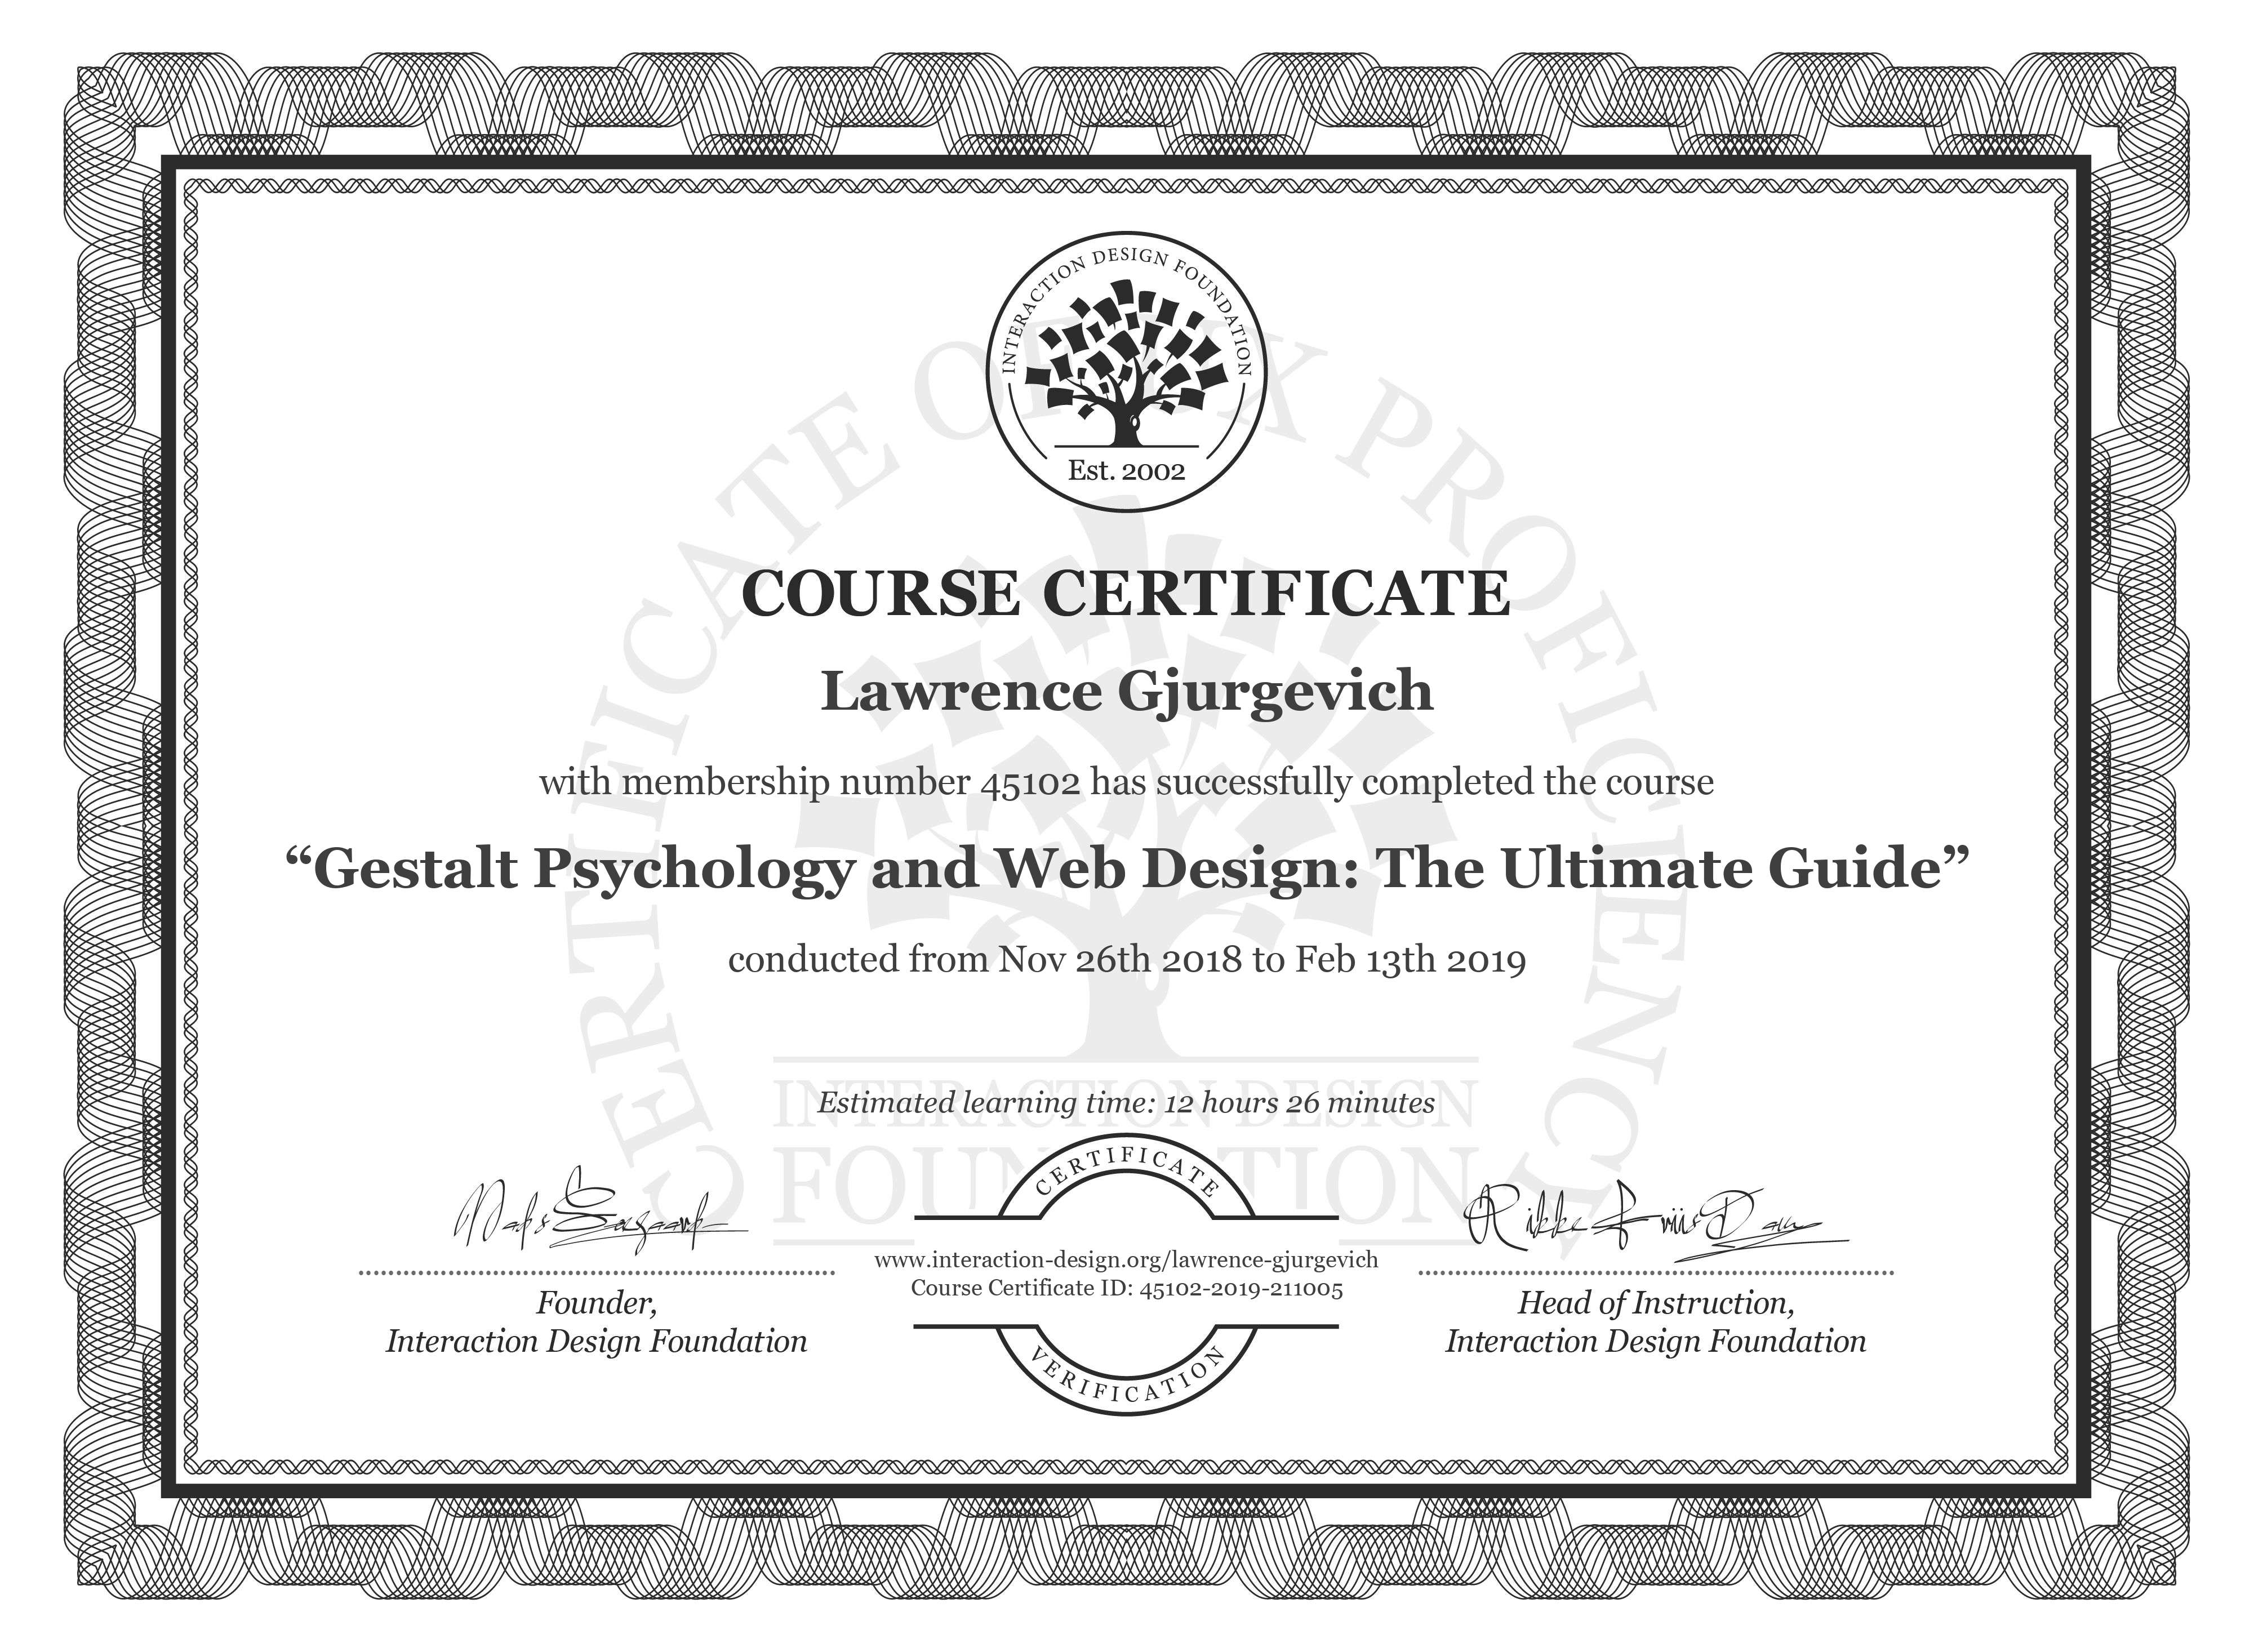 Lawrence Gjurgevich: Course Certificate - Gestalt Psychology and Web Design: The Ultimate Guide